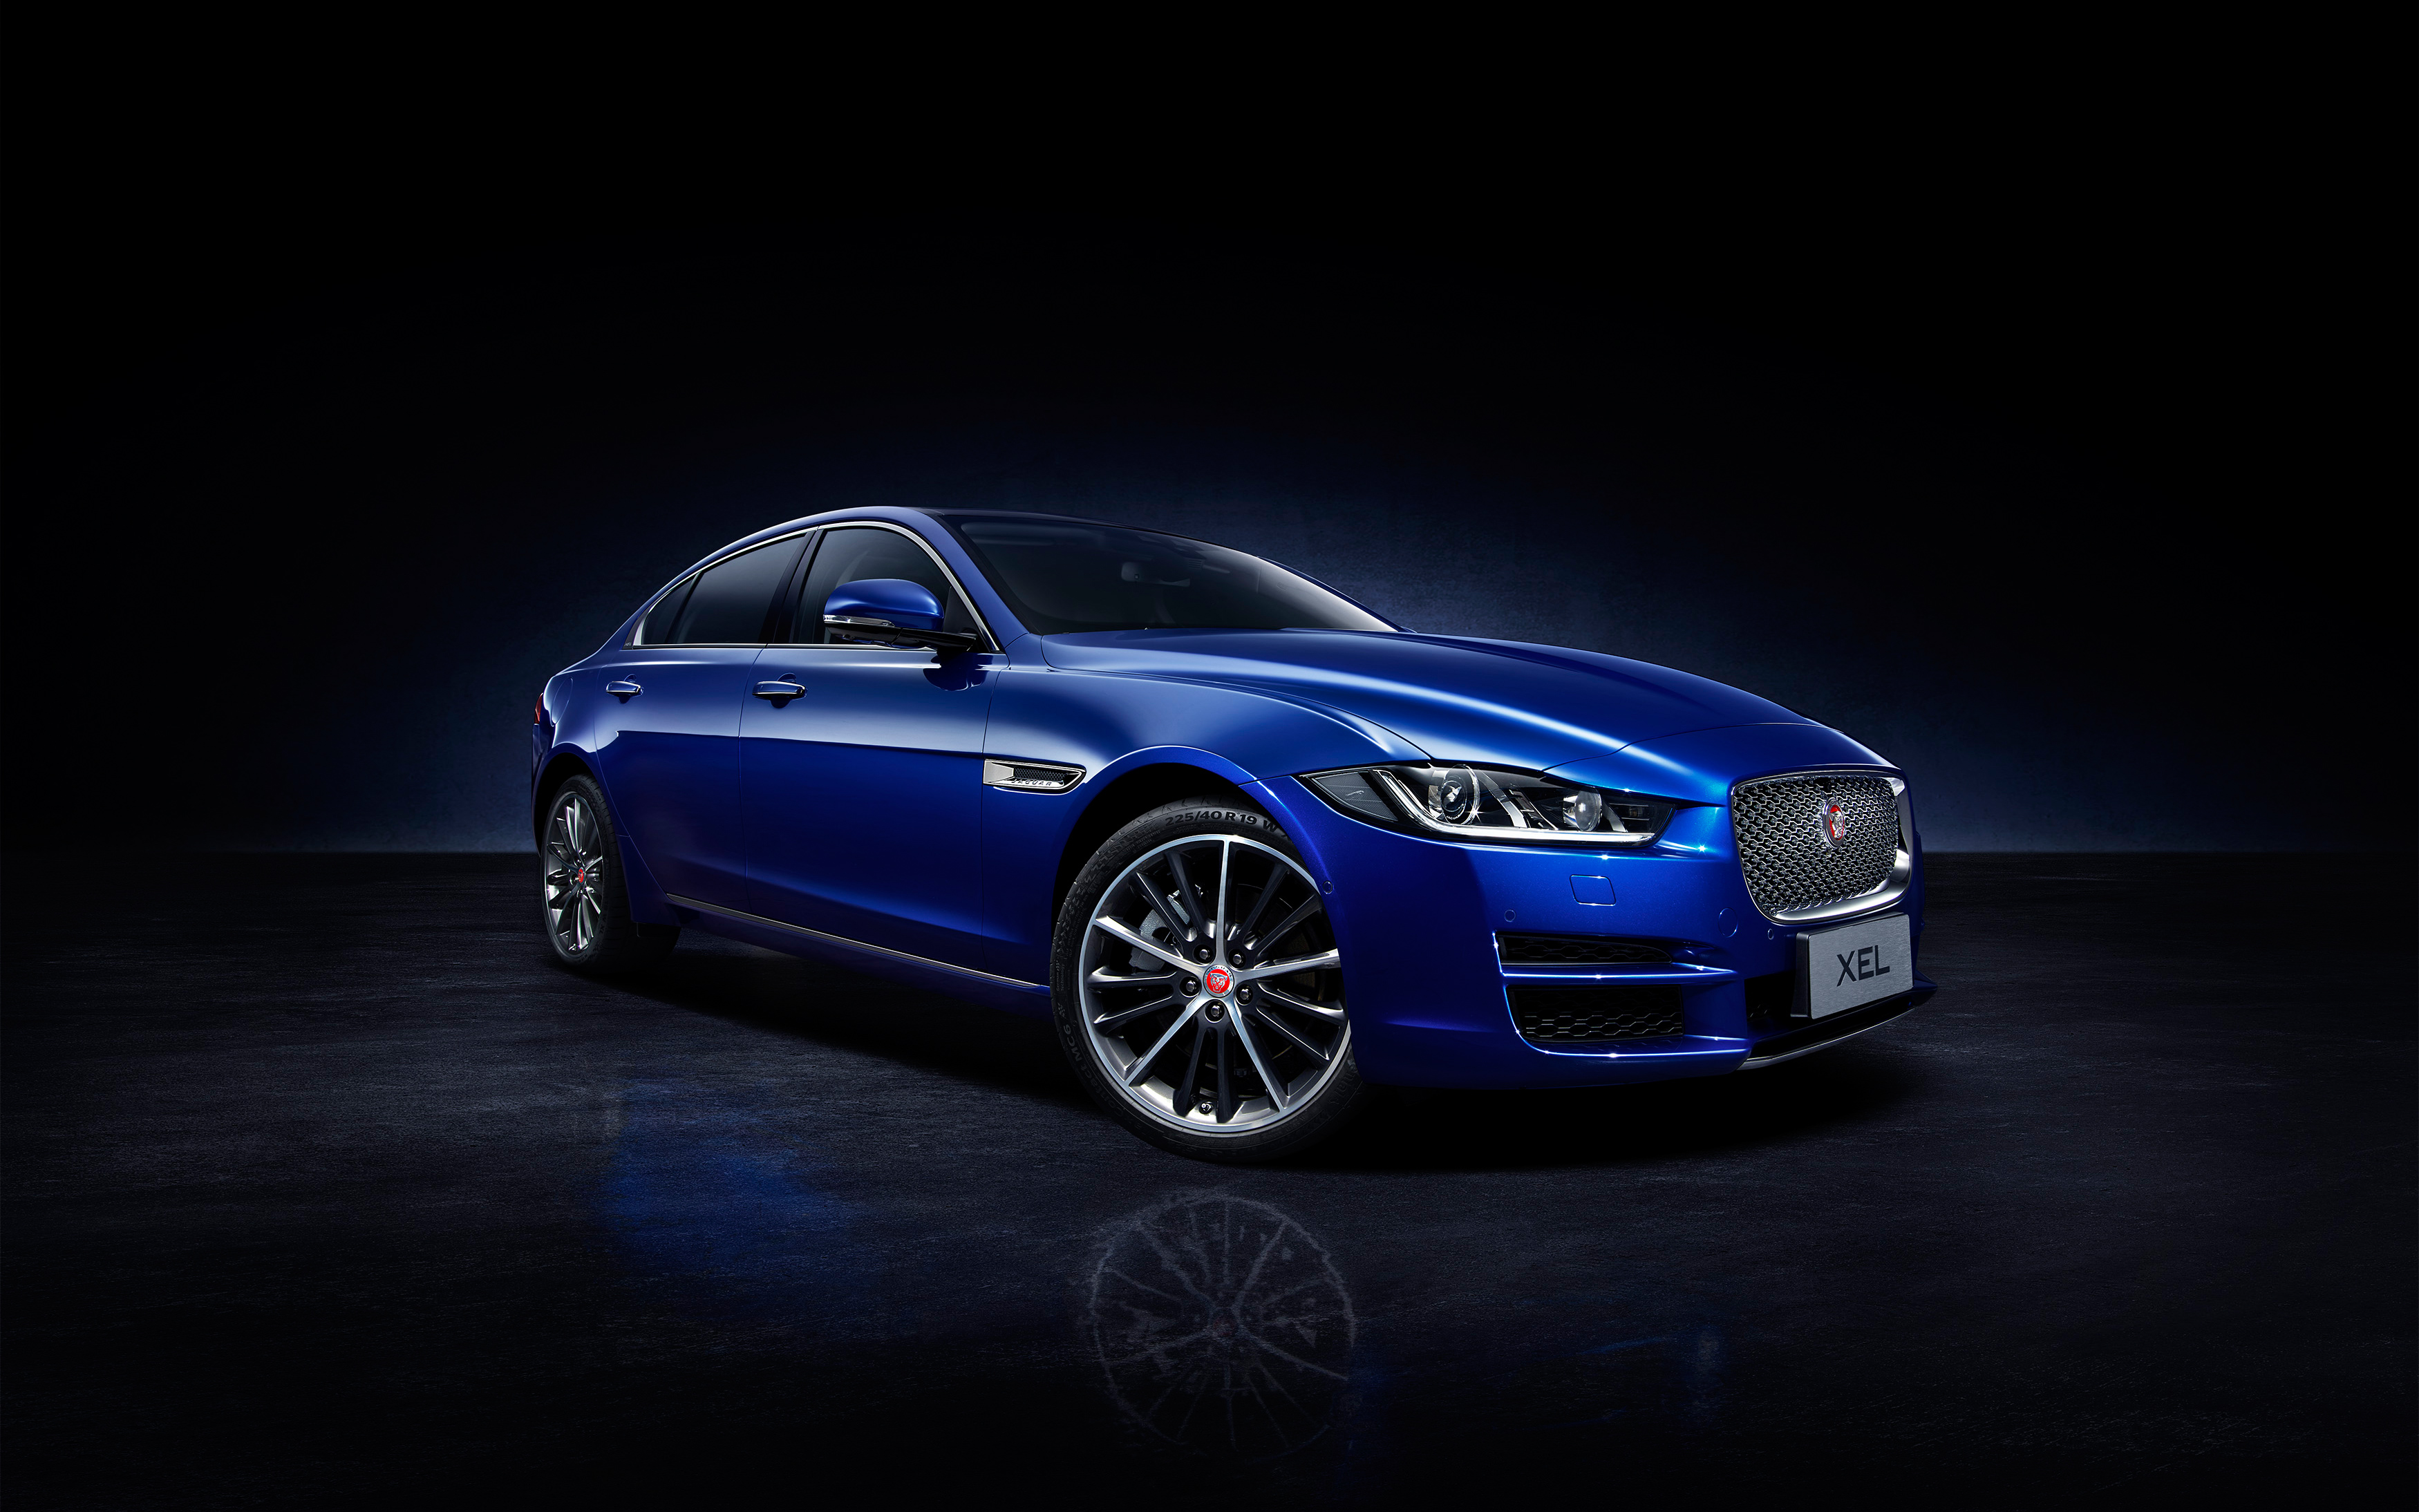 Jaguar XEL 2018 Wallpapers